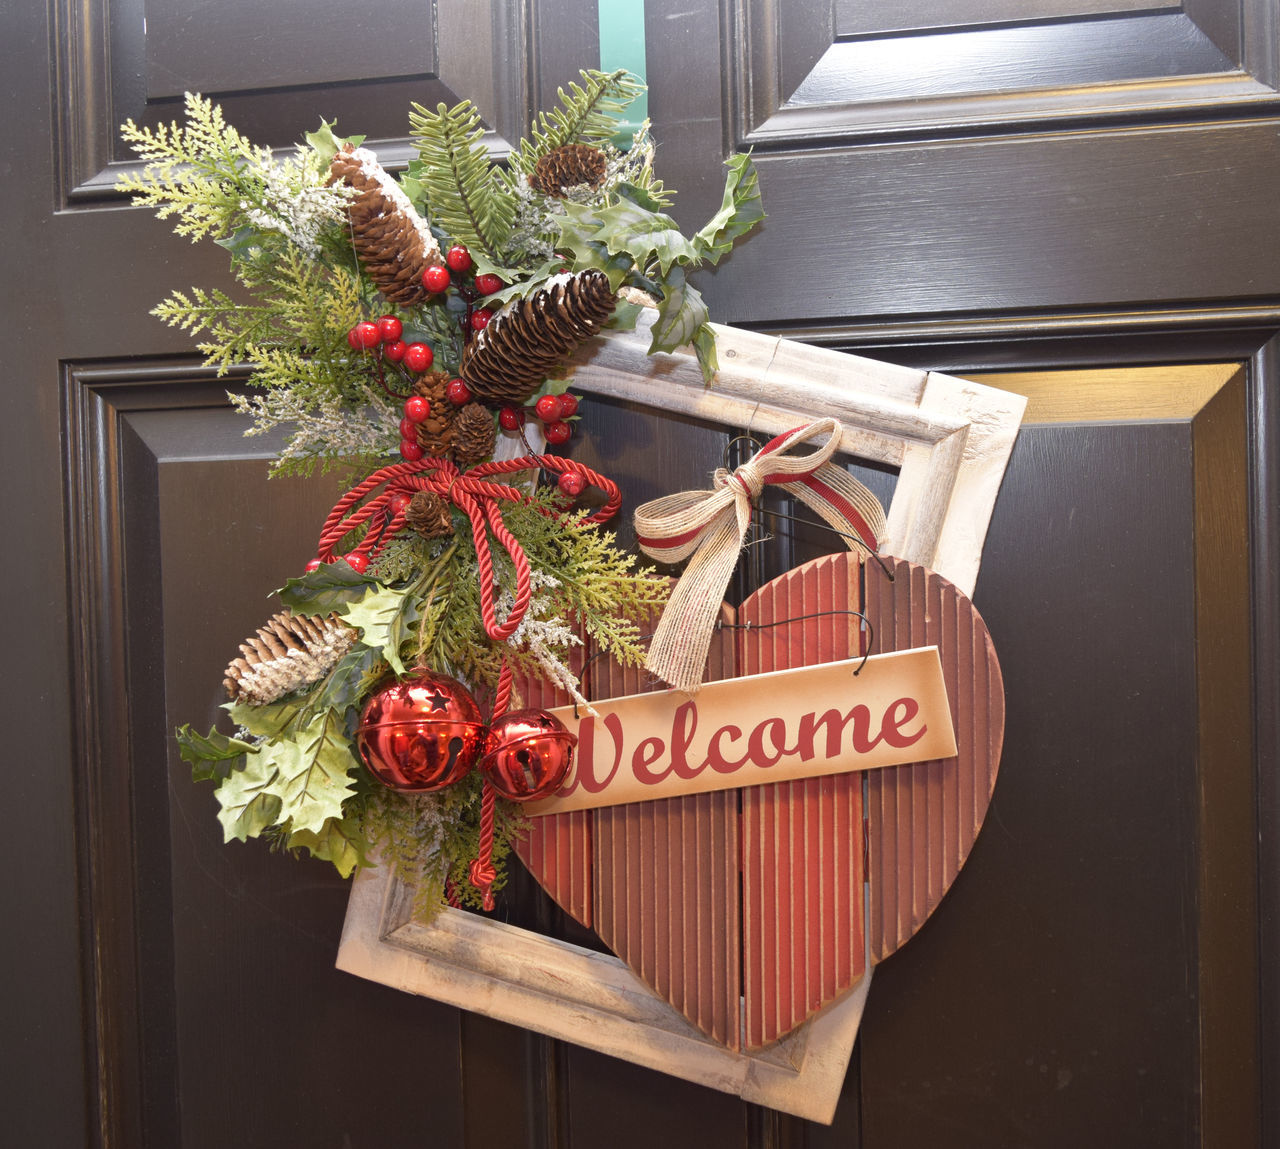 Christmas Decorations With Welcome Sign On Door